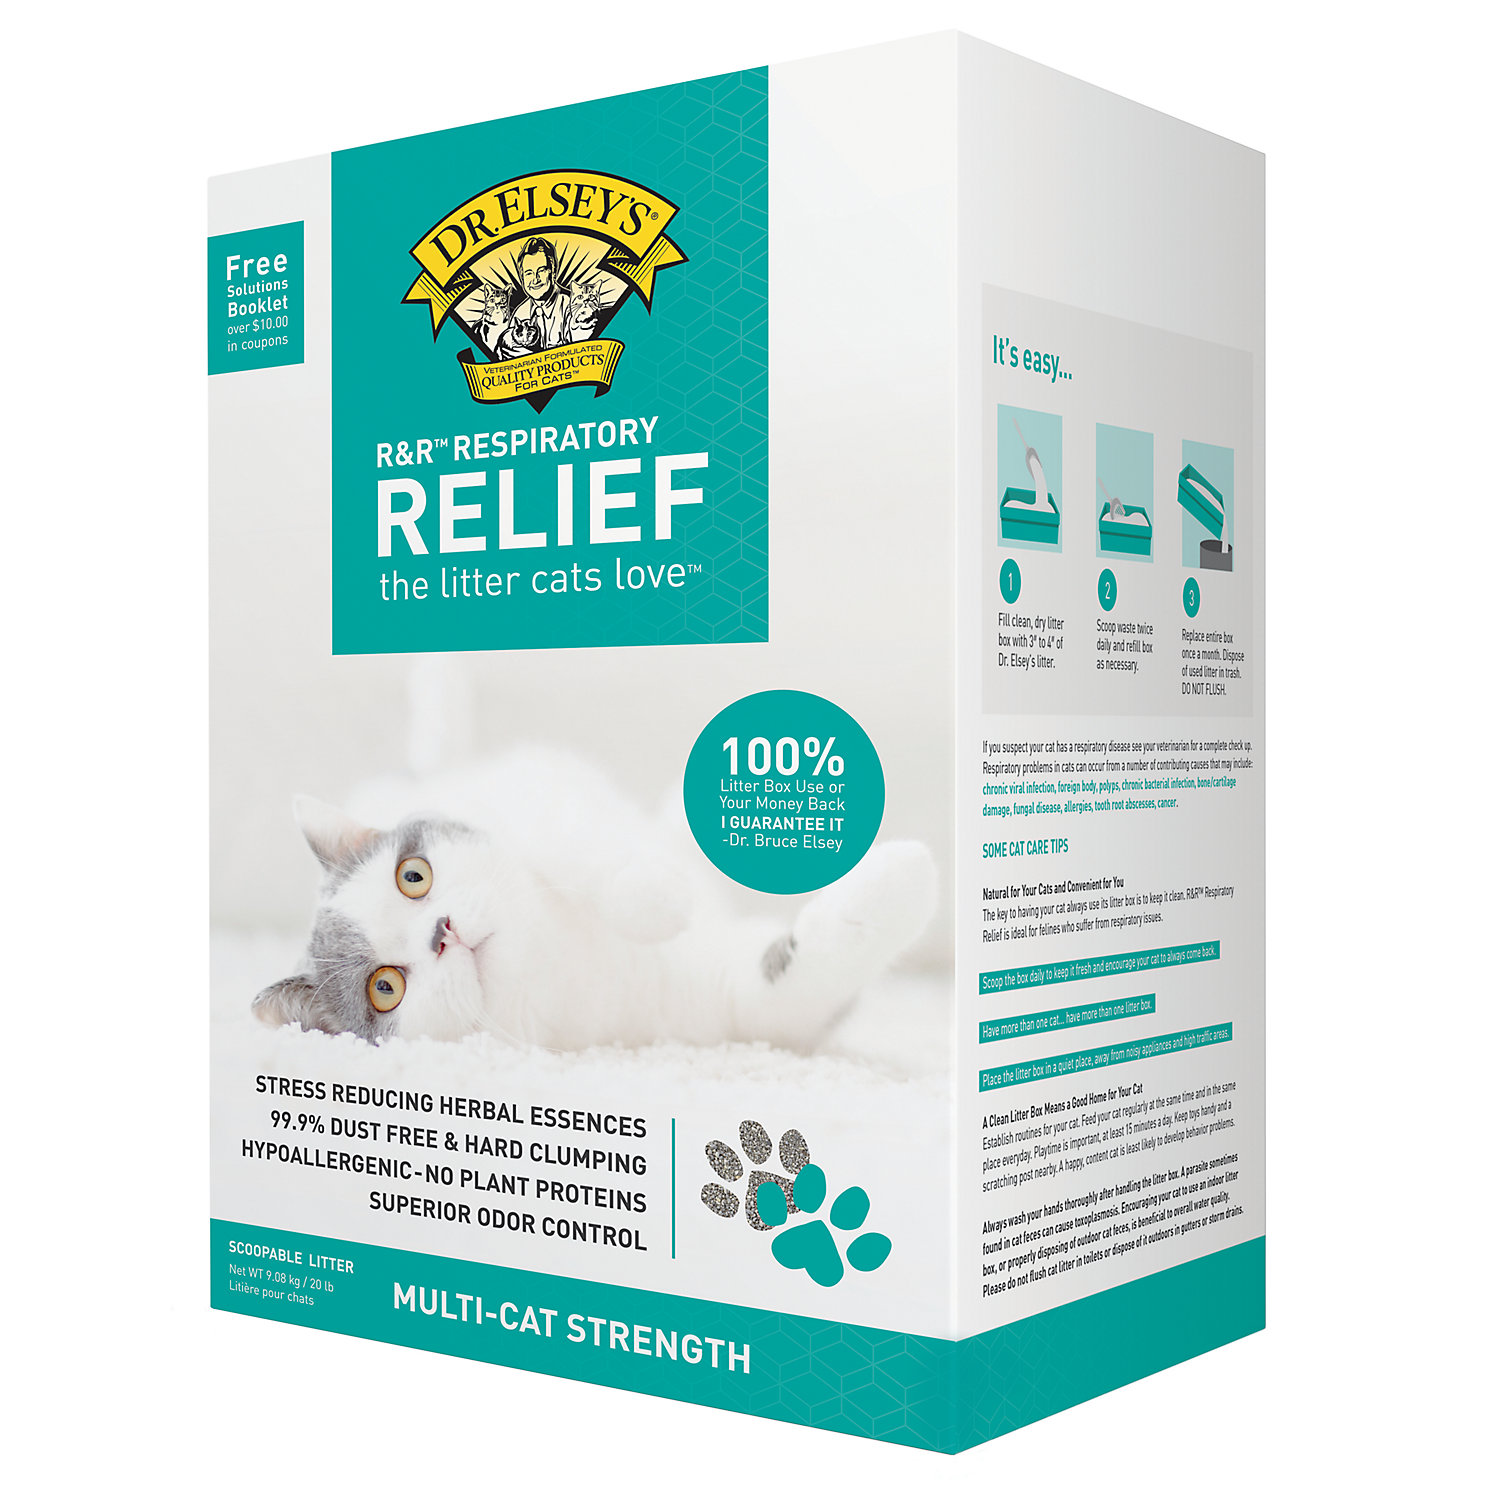 Dr. Elseys Precious Cat Respiratory Relief Clumping Clay Cat Litter, 20 Lbs.